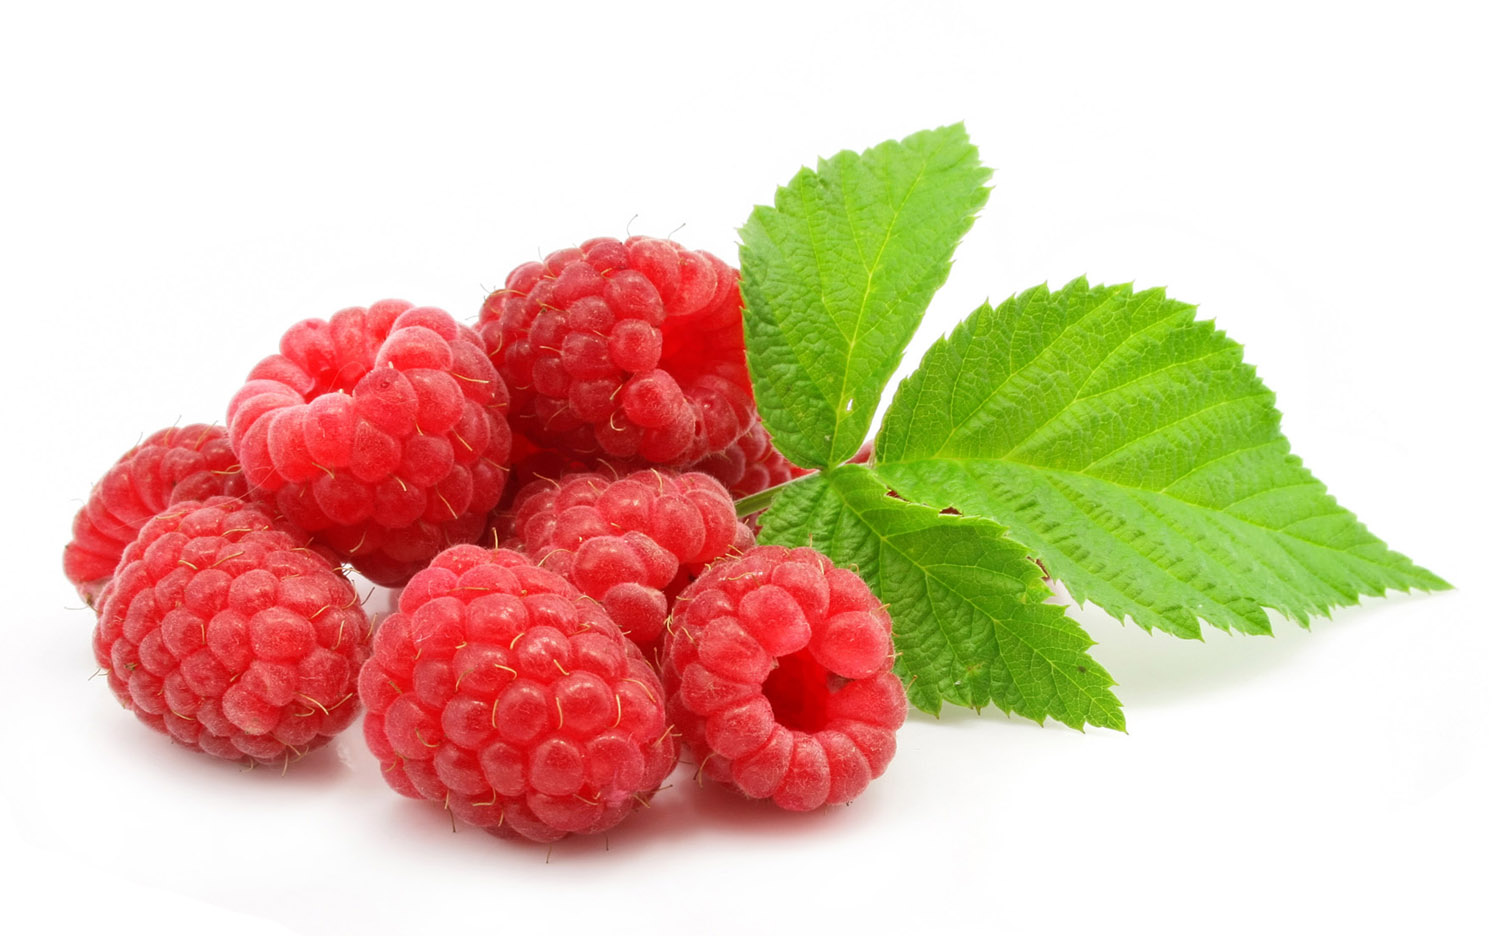 HD Raspberry picture 25215